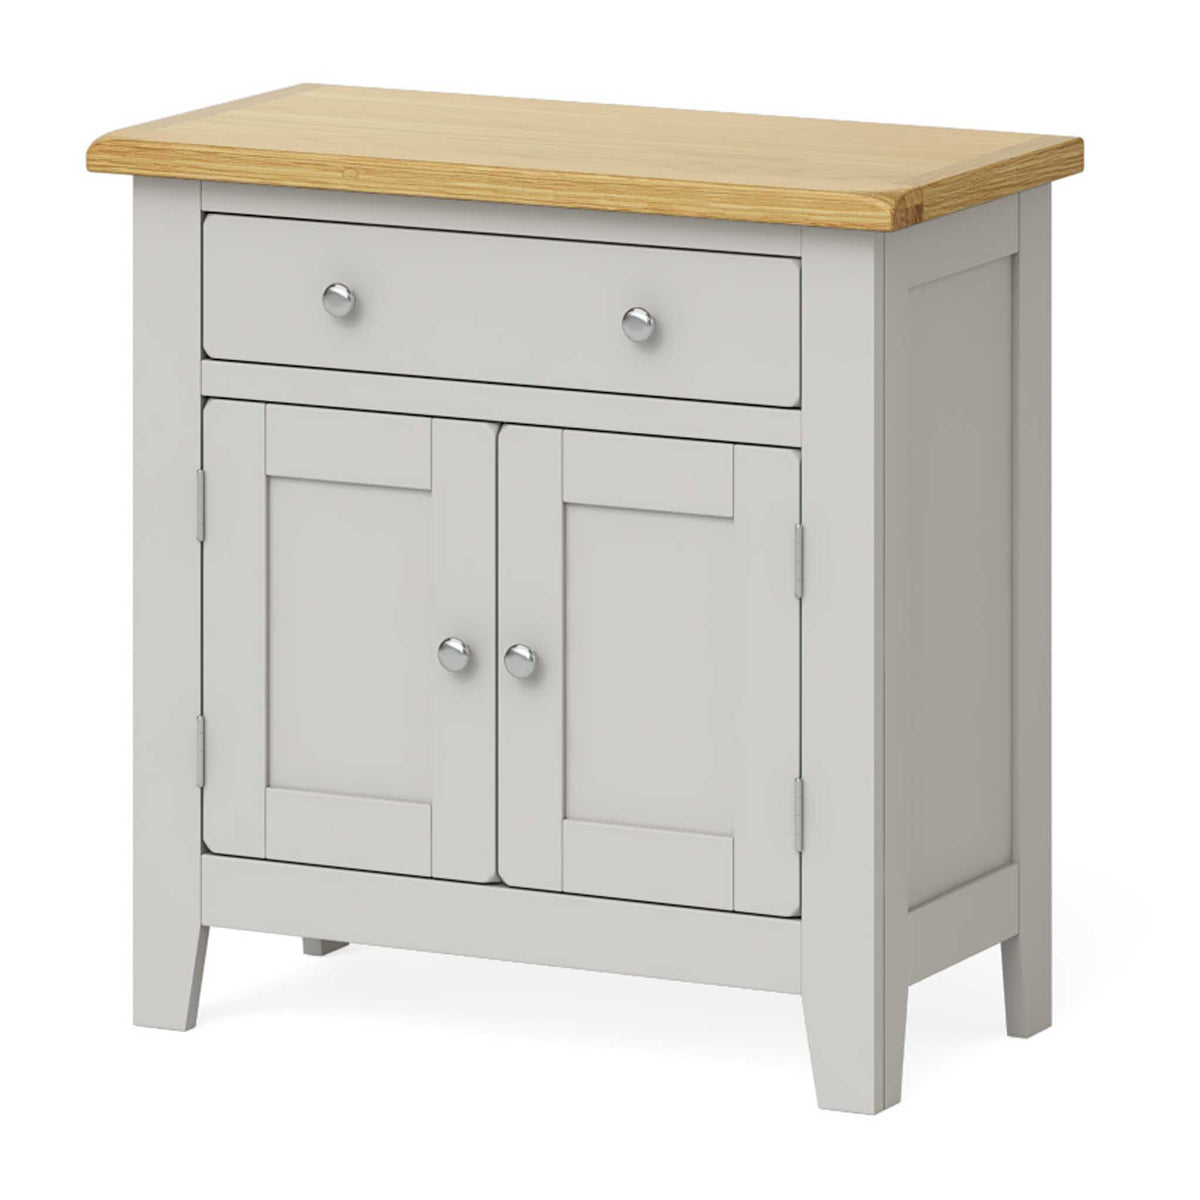 Lundy Grey Mini Sideboard - Side view